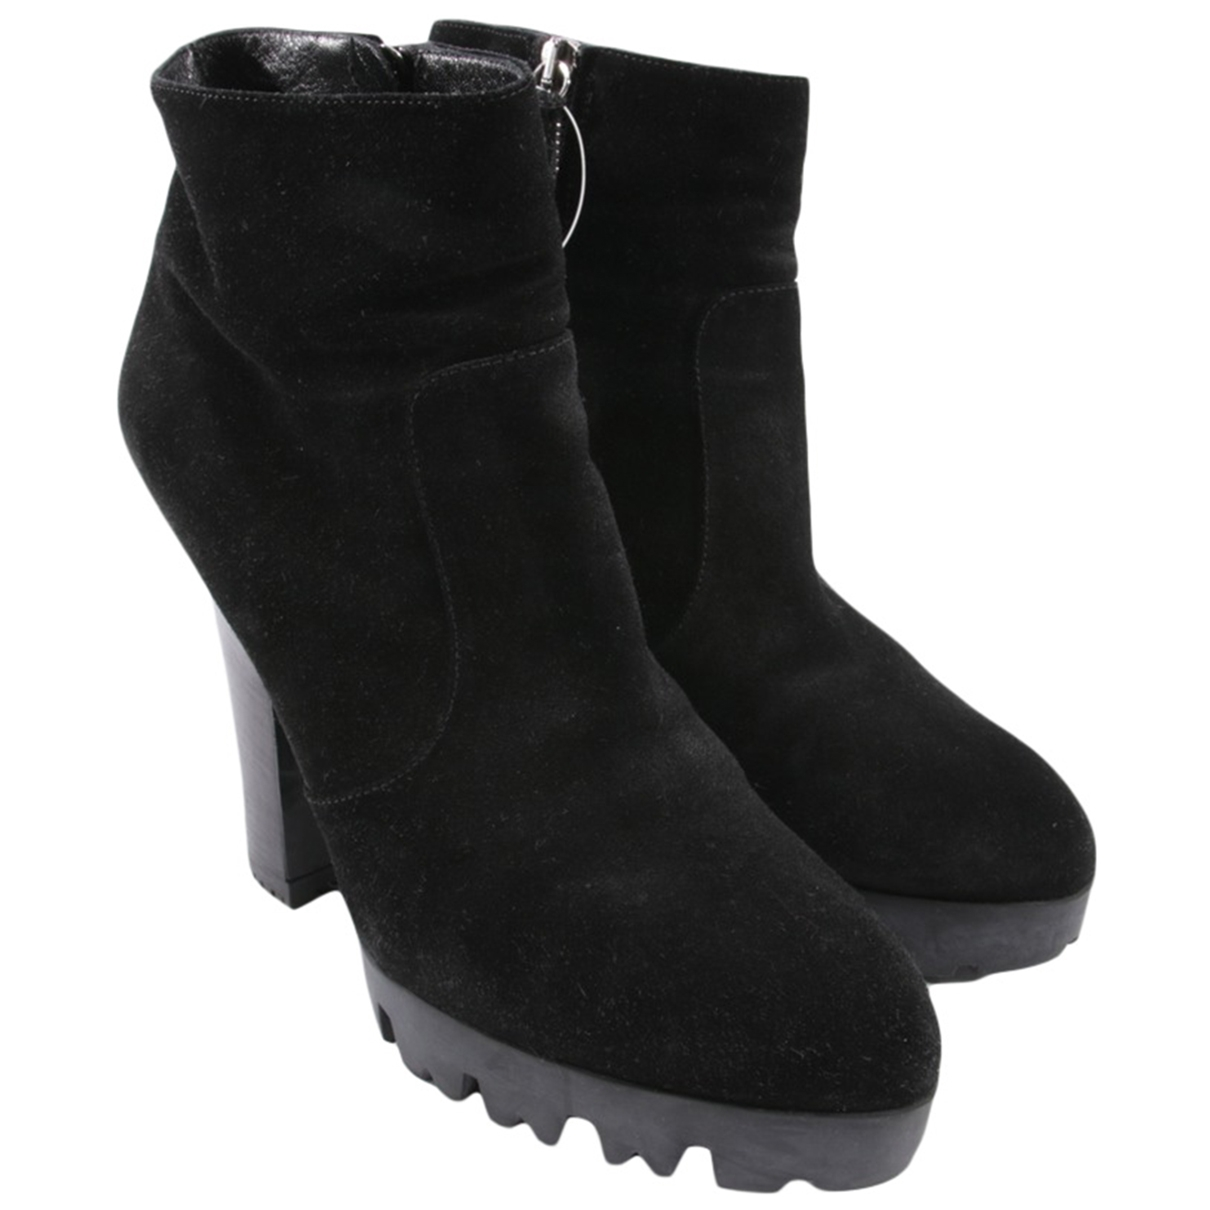 Miu Miu \N Black Leather Ankle boots for Women 39.5 EU